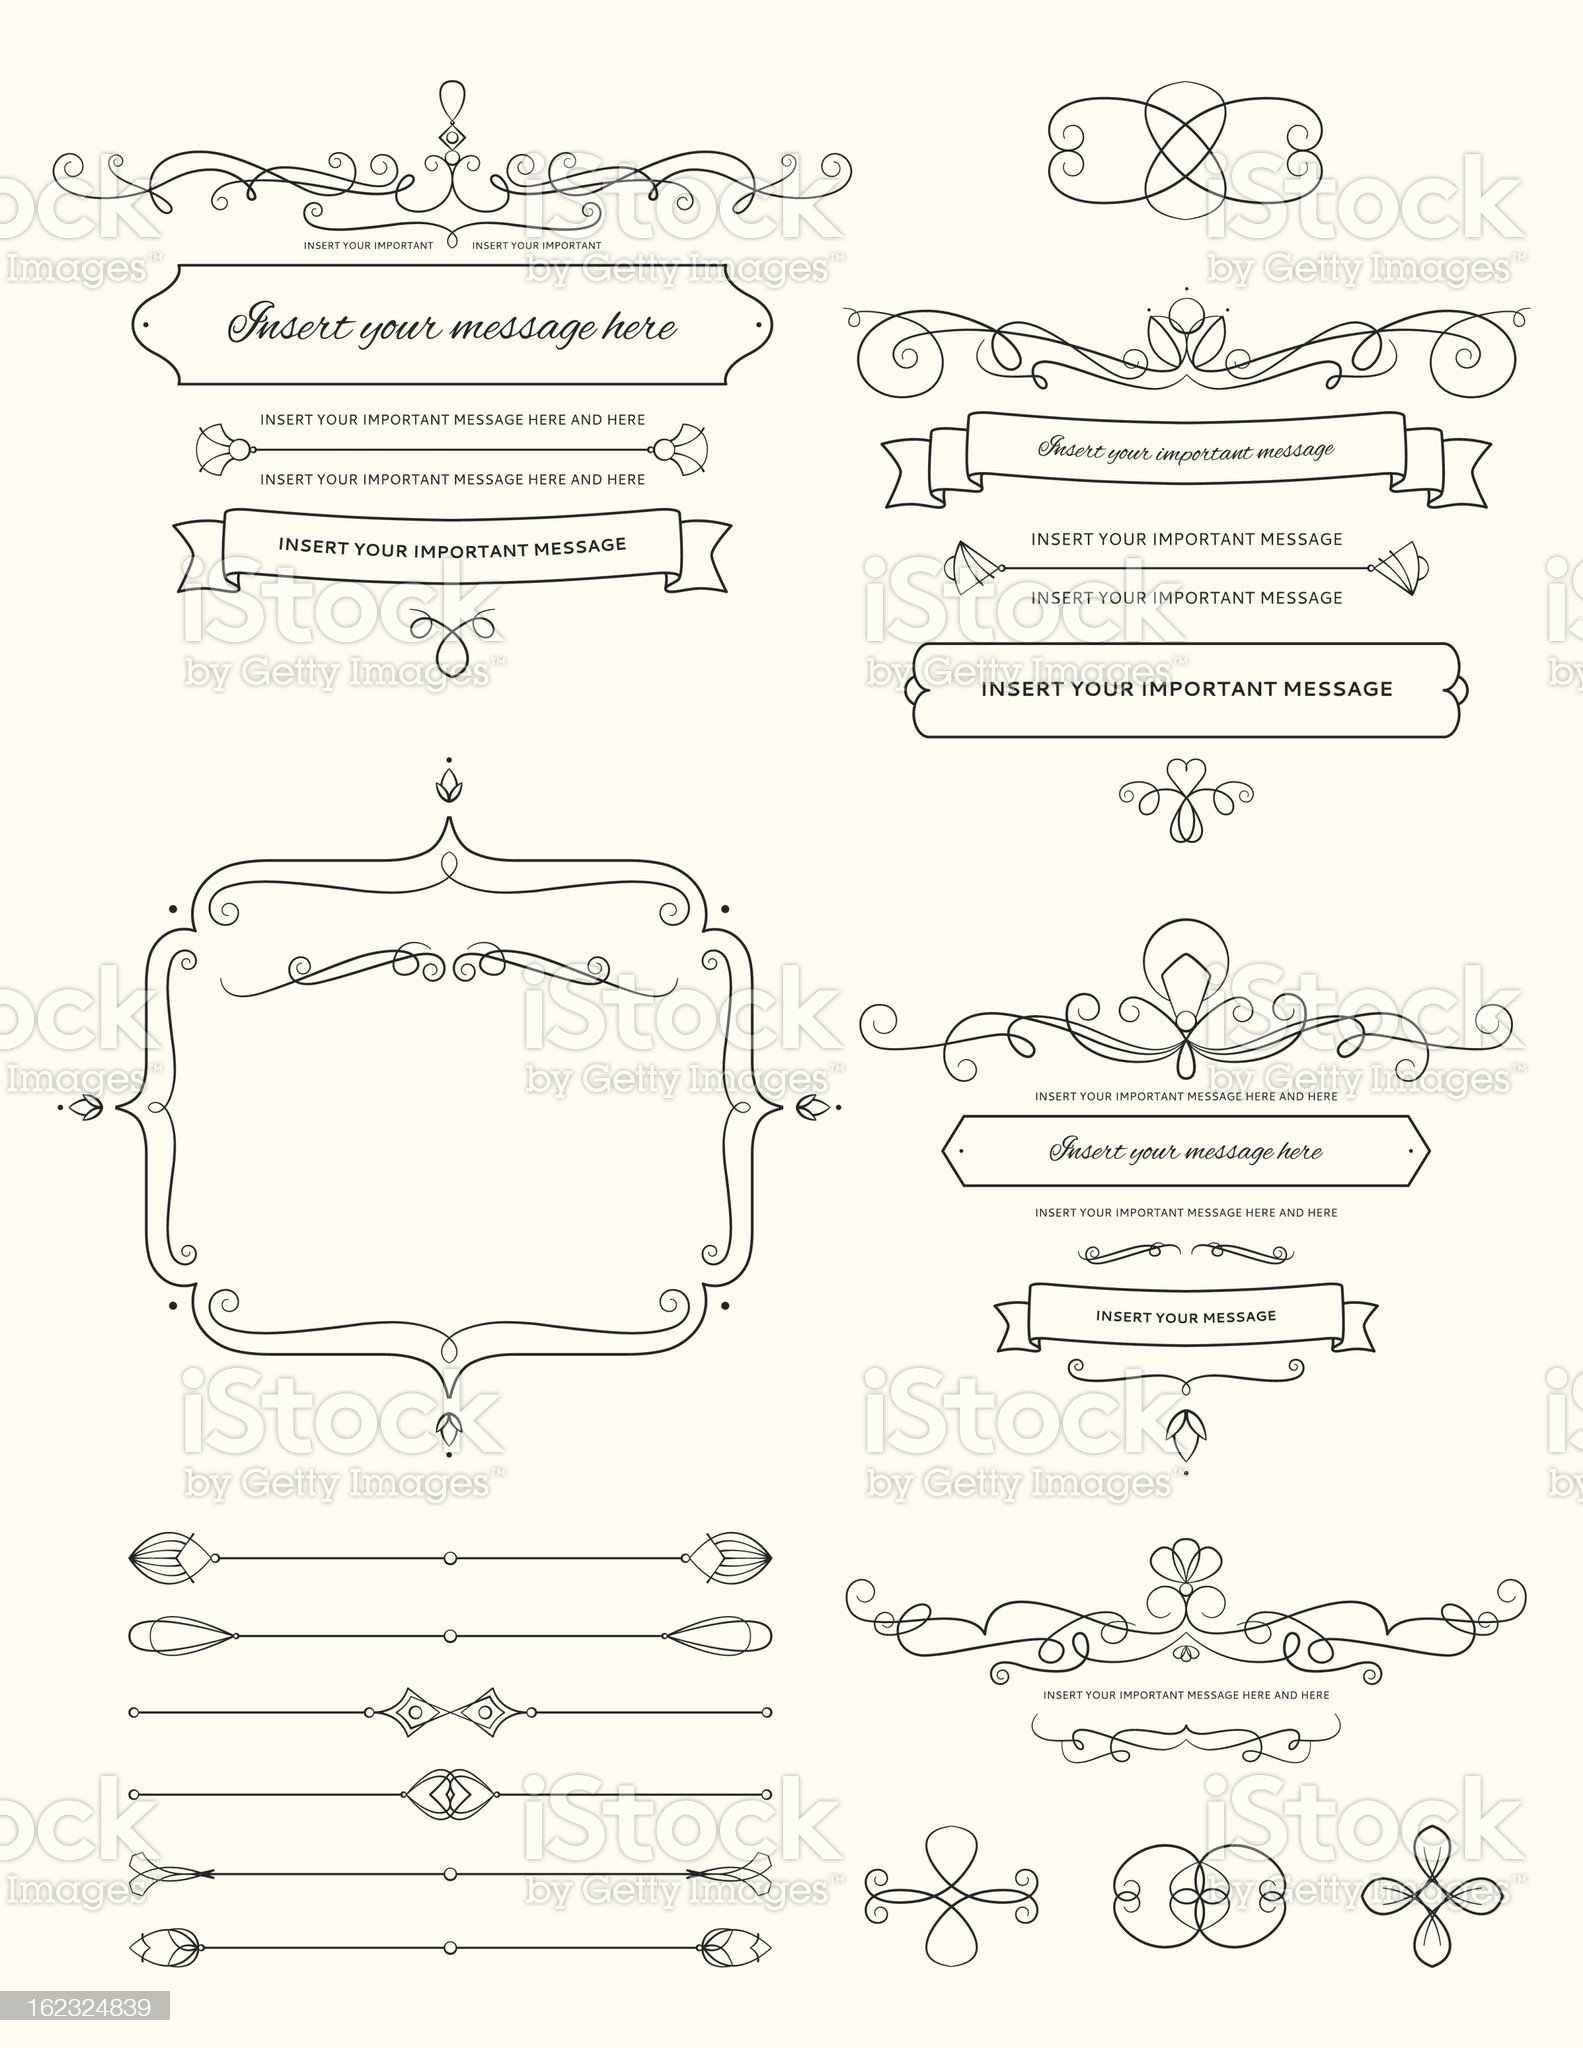 Vintage Calligraphy Design Elements Two royalty-free stock vector art